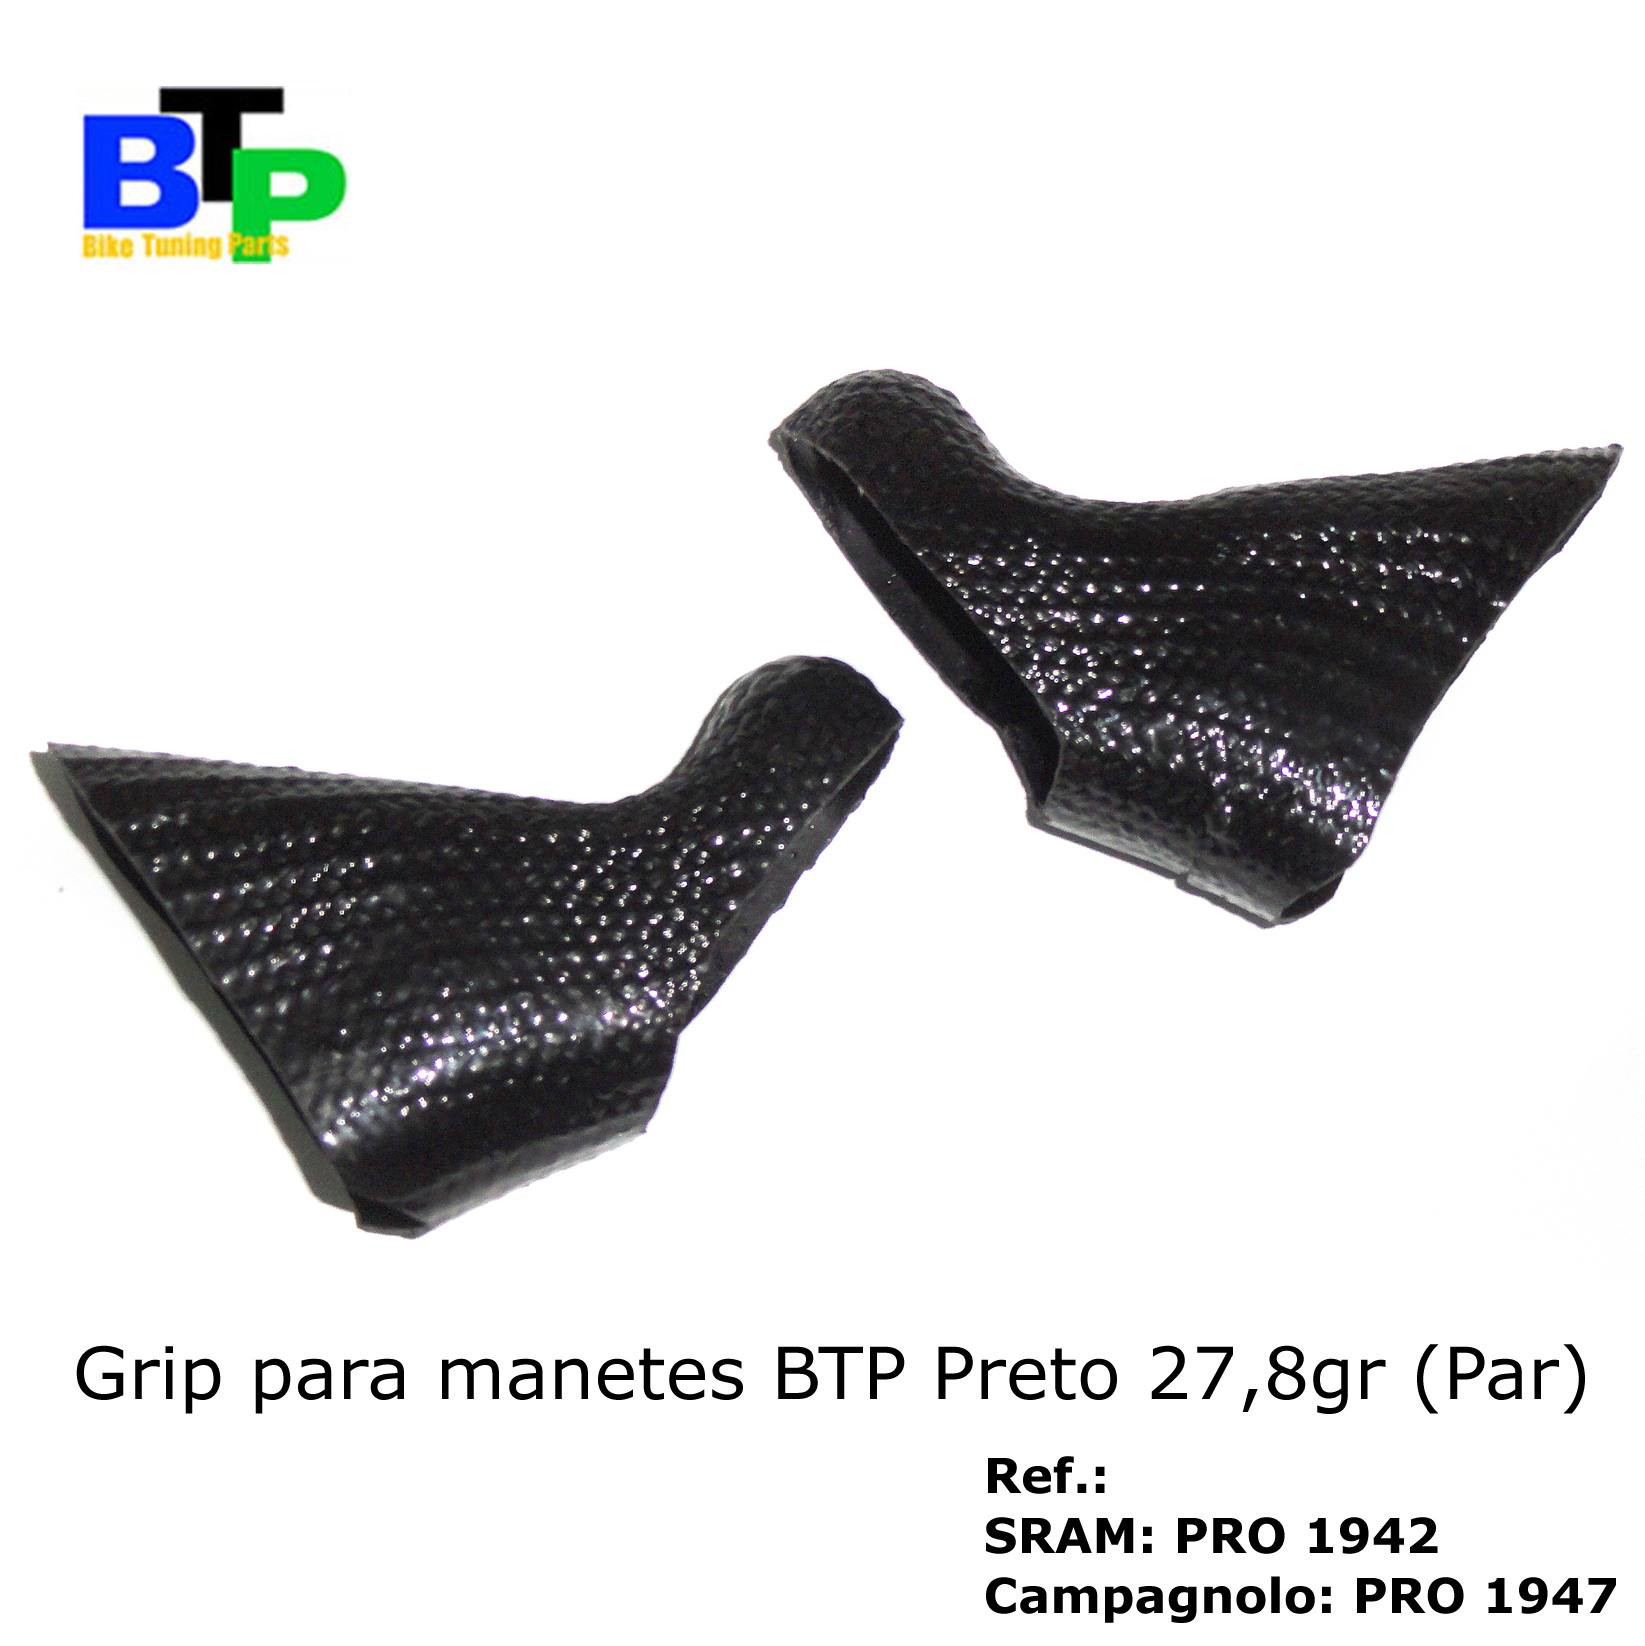 Borracha Manete Carbono BTP SRAM Black (par) 27.8gr